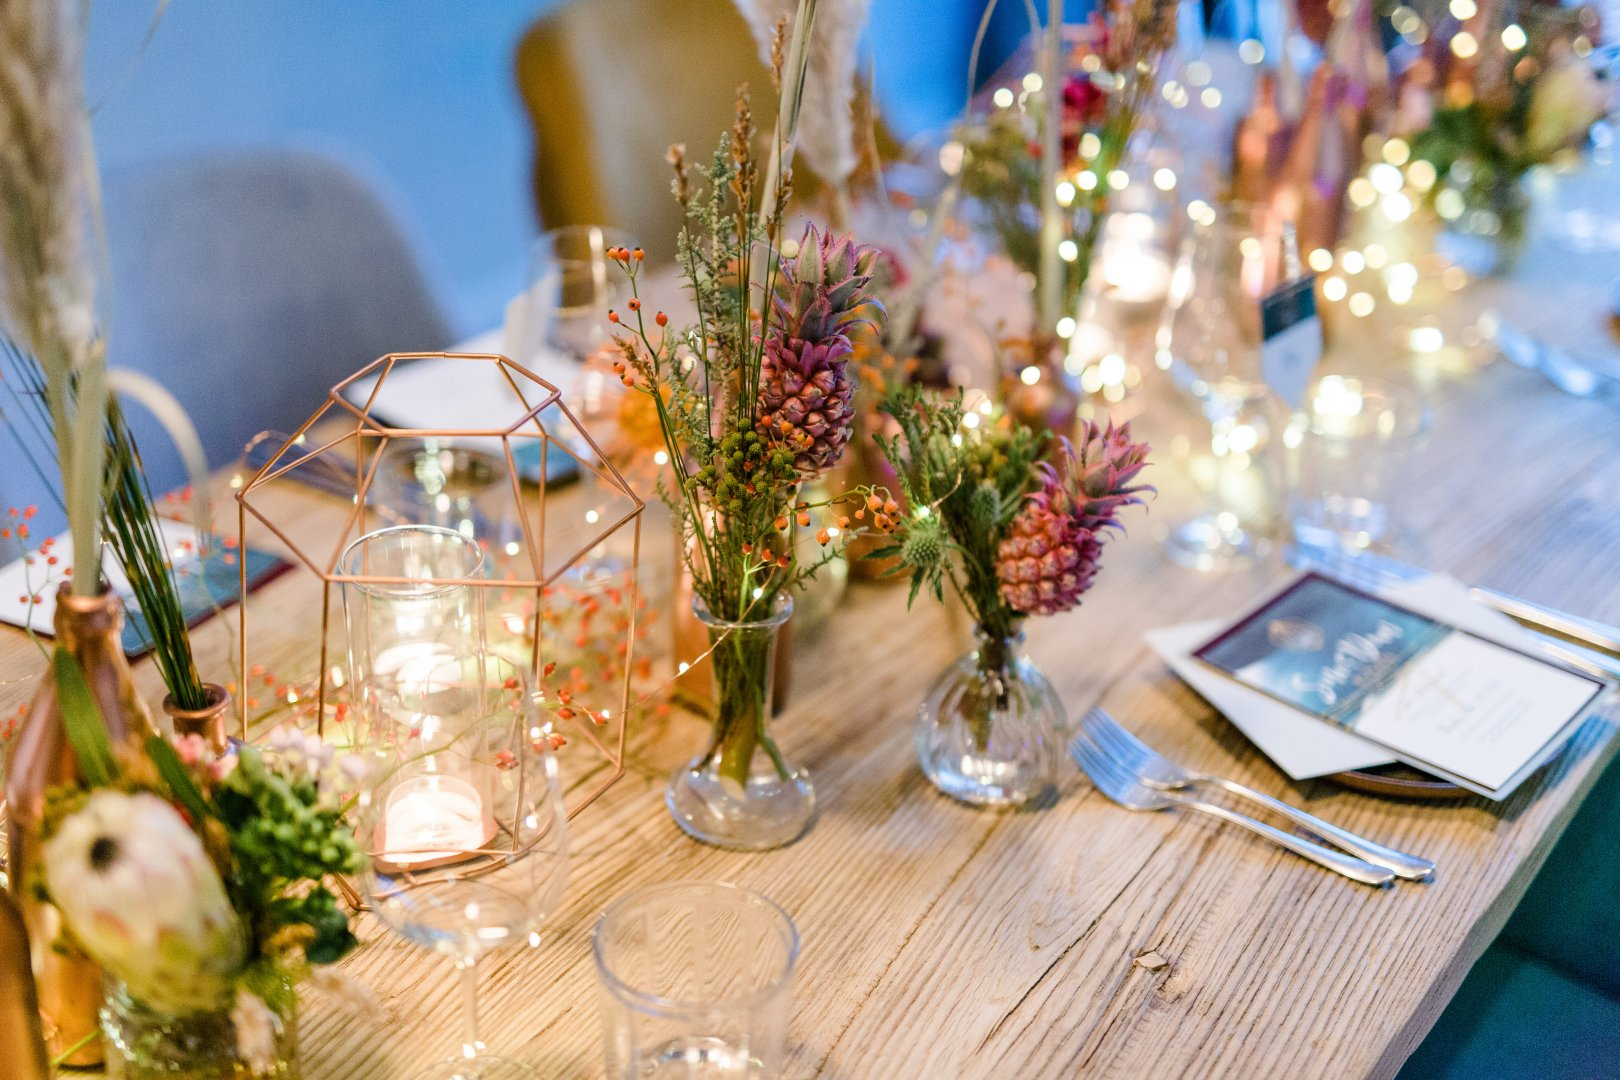 Lavender Flower Yellow Centrepiece Table Floral design Flower Arranging Rehearsal dinner Plant Floristry Wildflower Spring Tableware Champagne stemware Event Branch Glass Textile Wedding reception Bouquet Tablecloth Drinkware Cut flowers Ceremony Stemware Twig Party Interior design